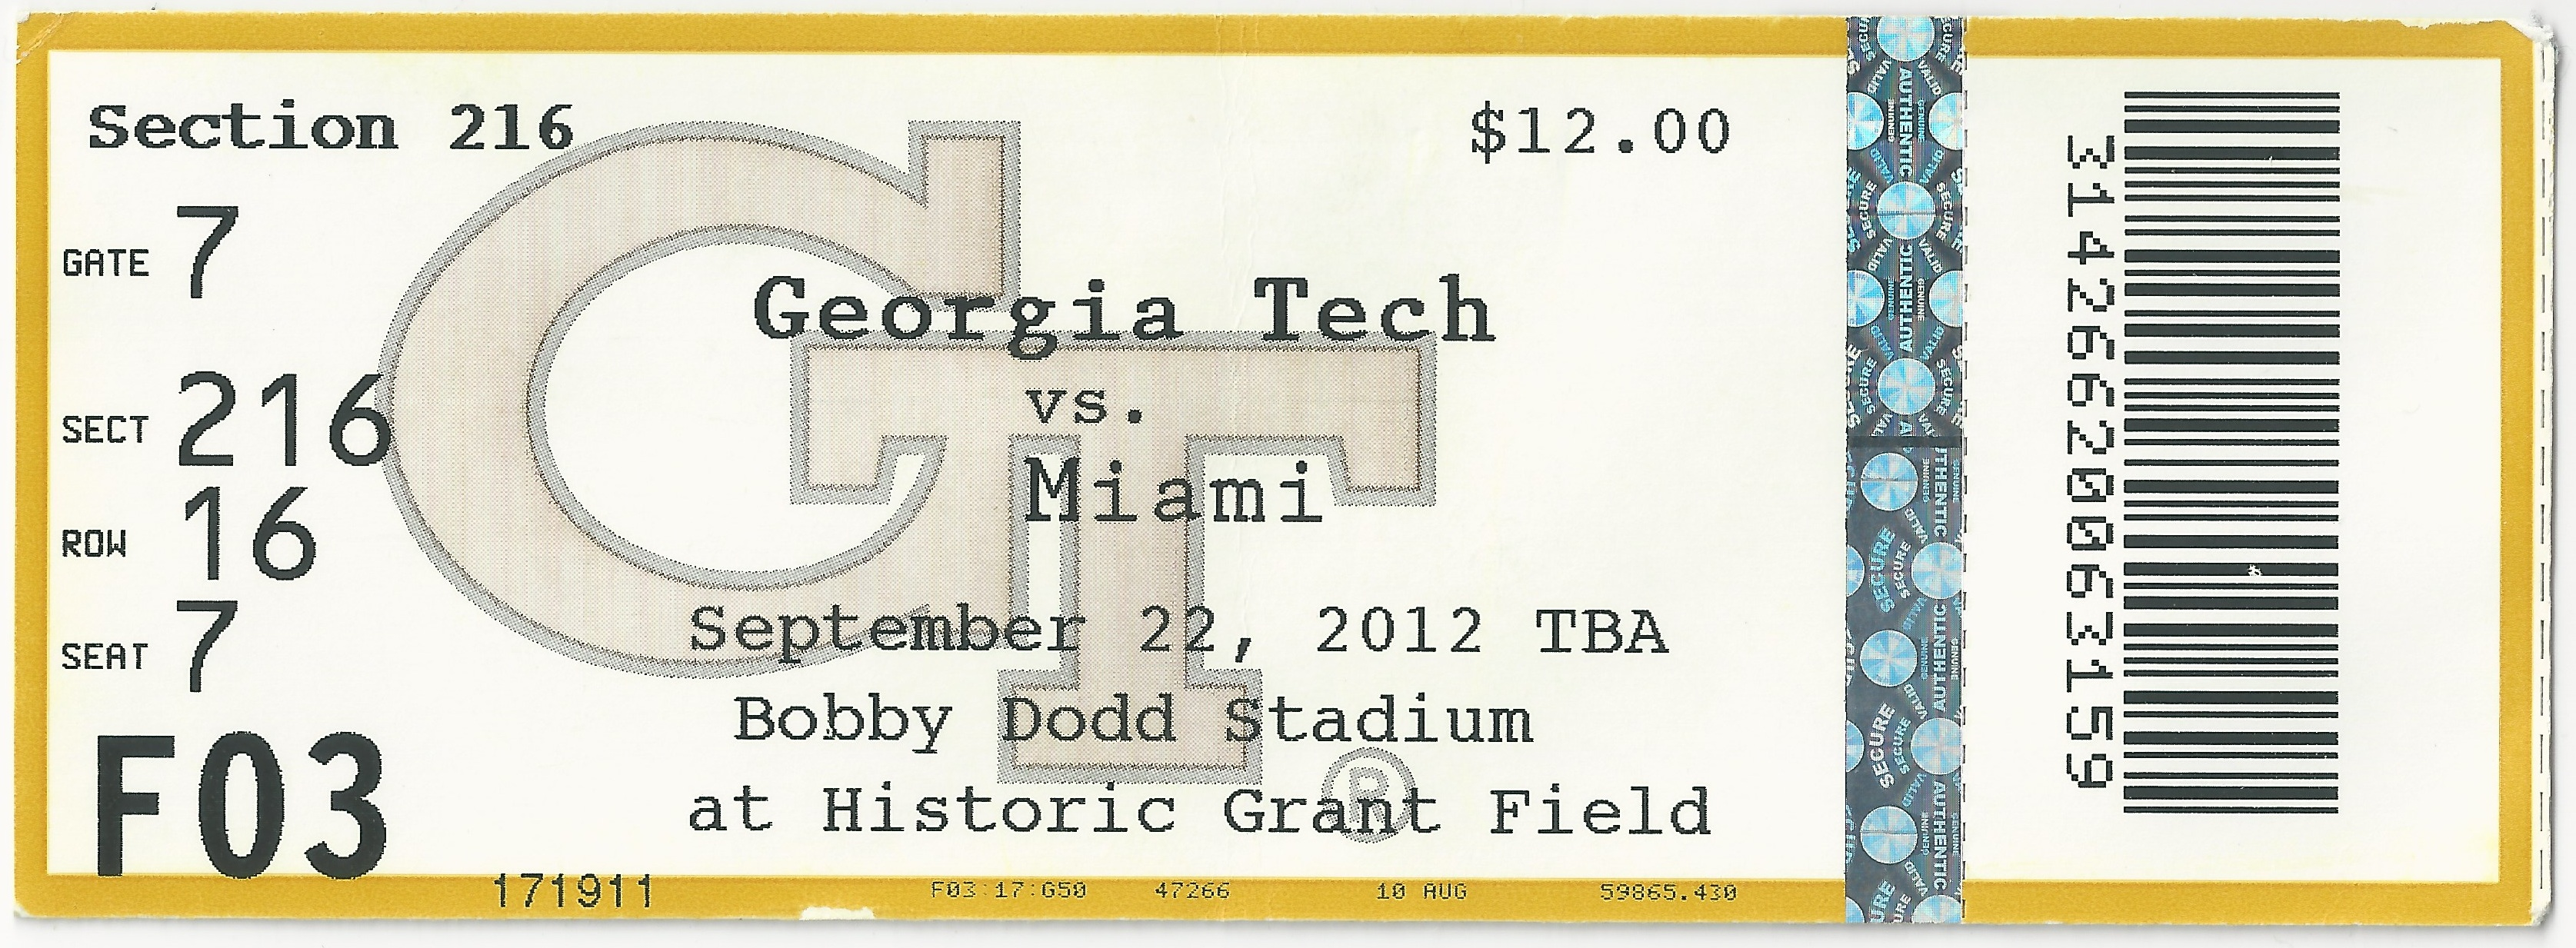 georgia tech application essay 2012 I was accepted to georgia tech this past admissions cycle what was your admission essay and personal statement on for georgia tech.